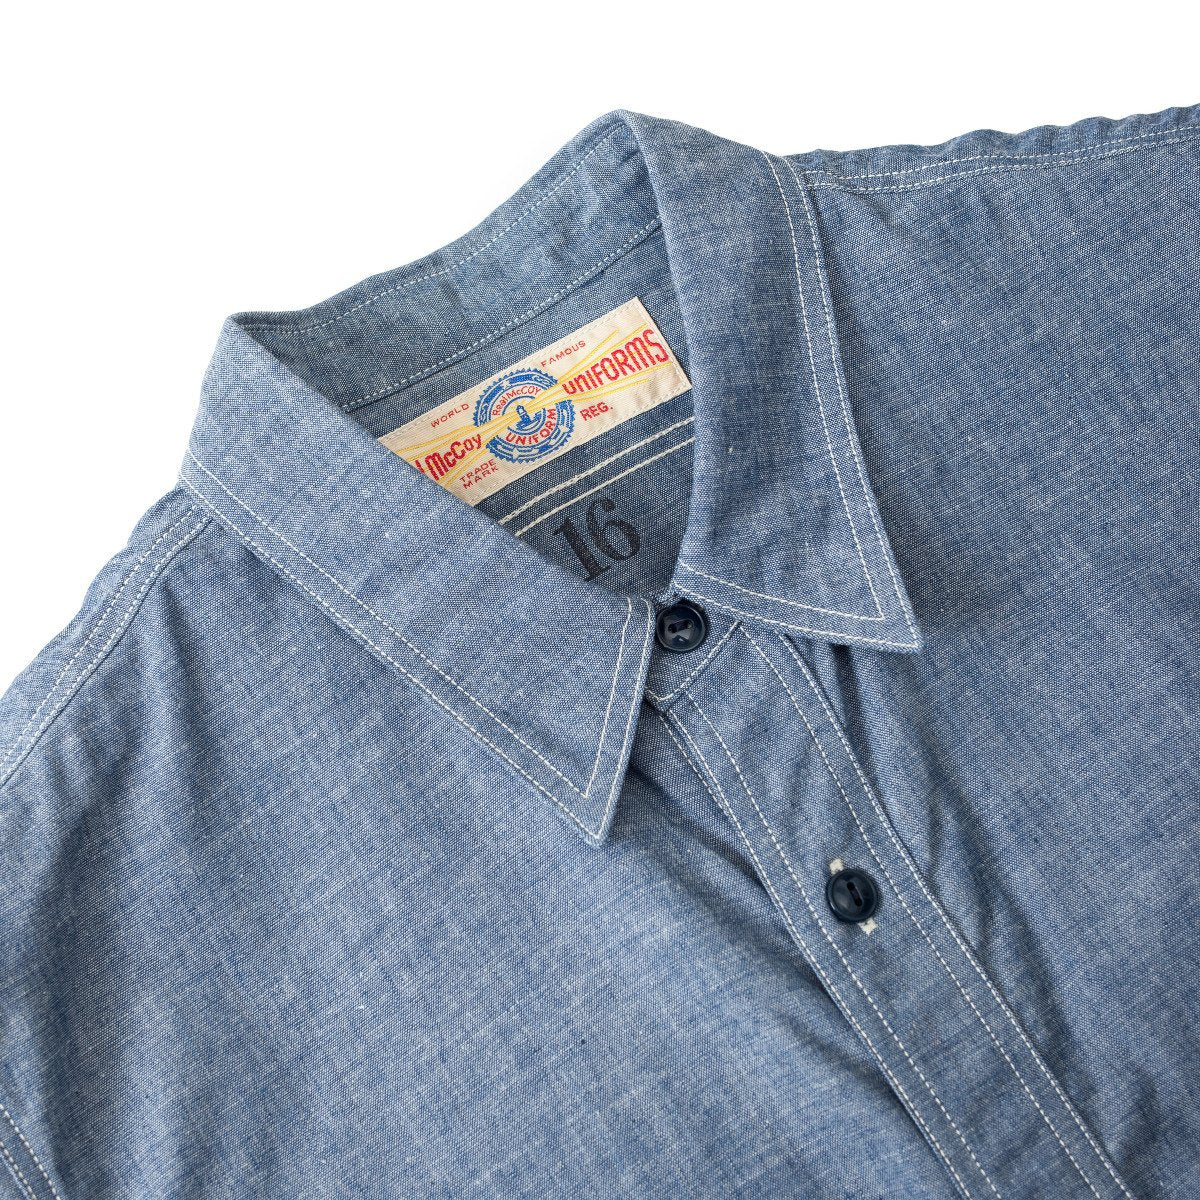 The Real McCoy's U.S.N. Chambray Shirt S/S MS18014-121